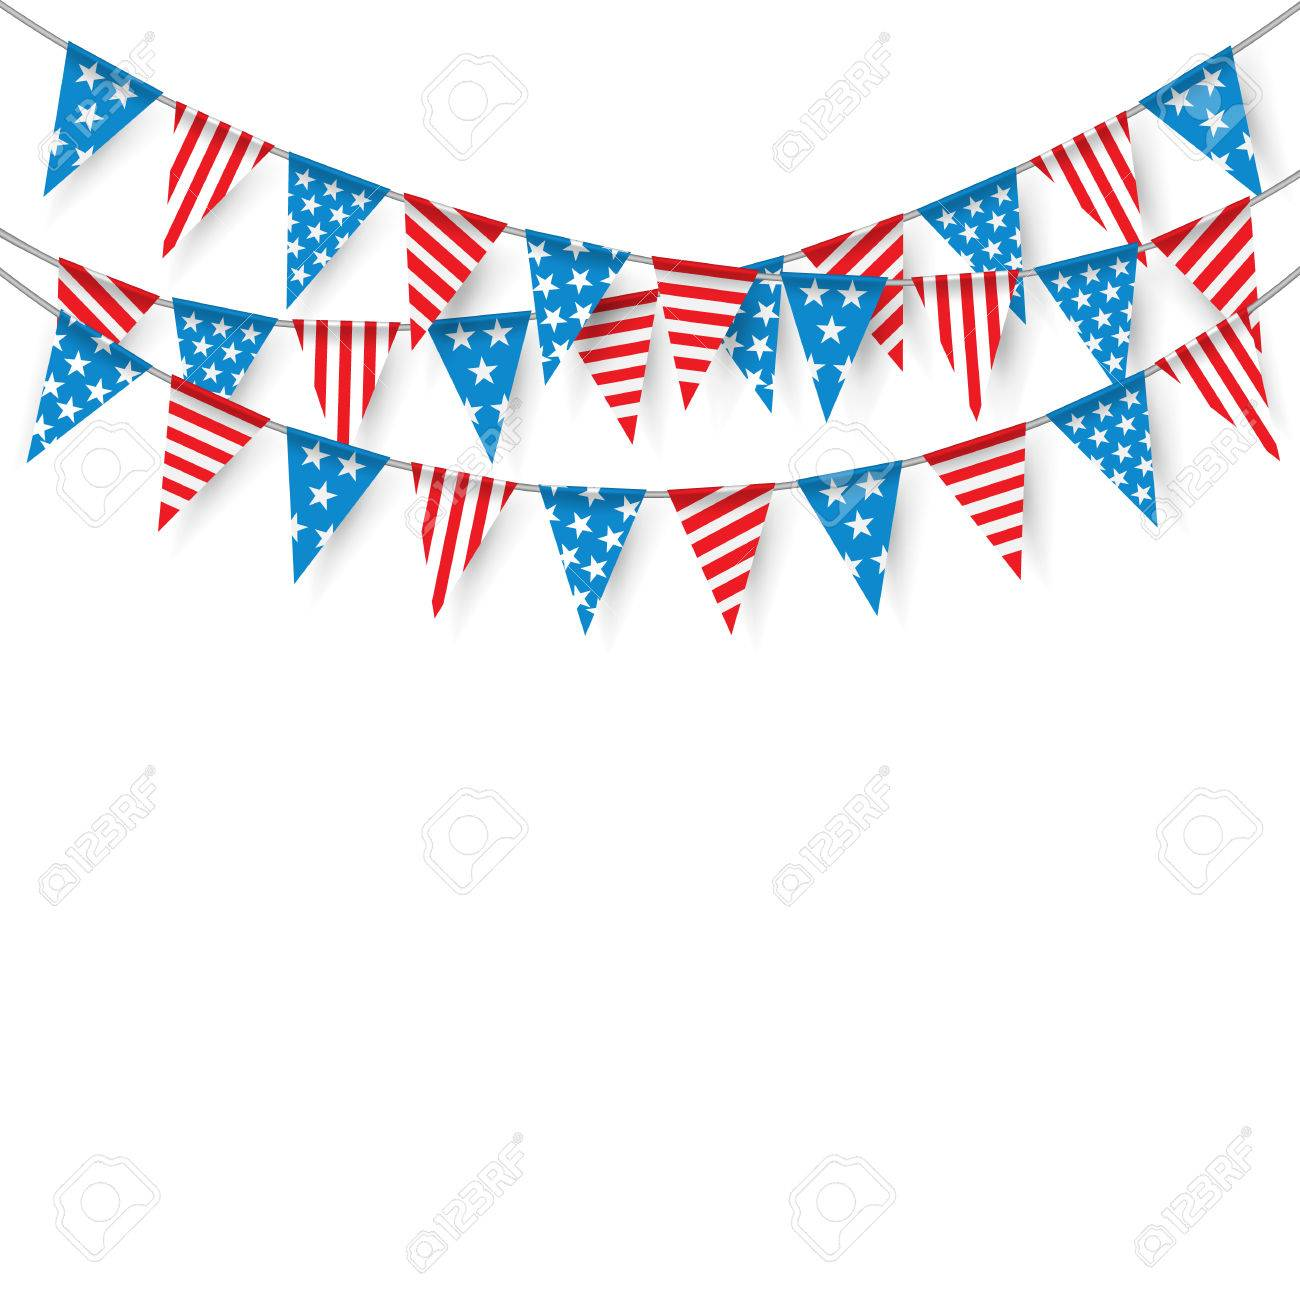 Bunting Flags, Hanging Bunting Flags for American Holidays, Party flags. - 59584286